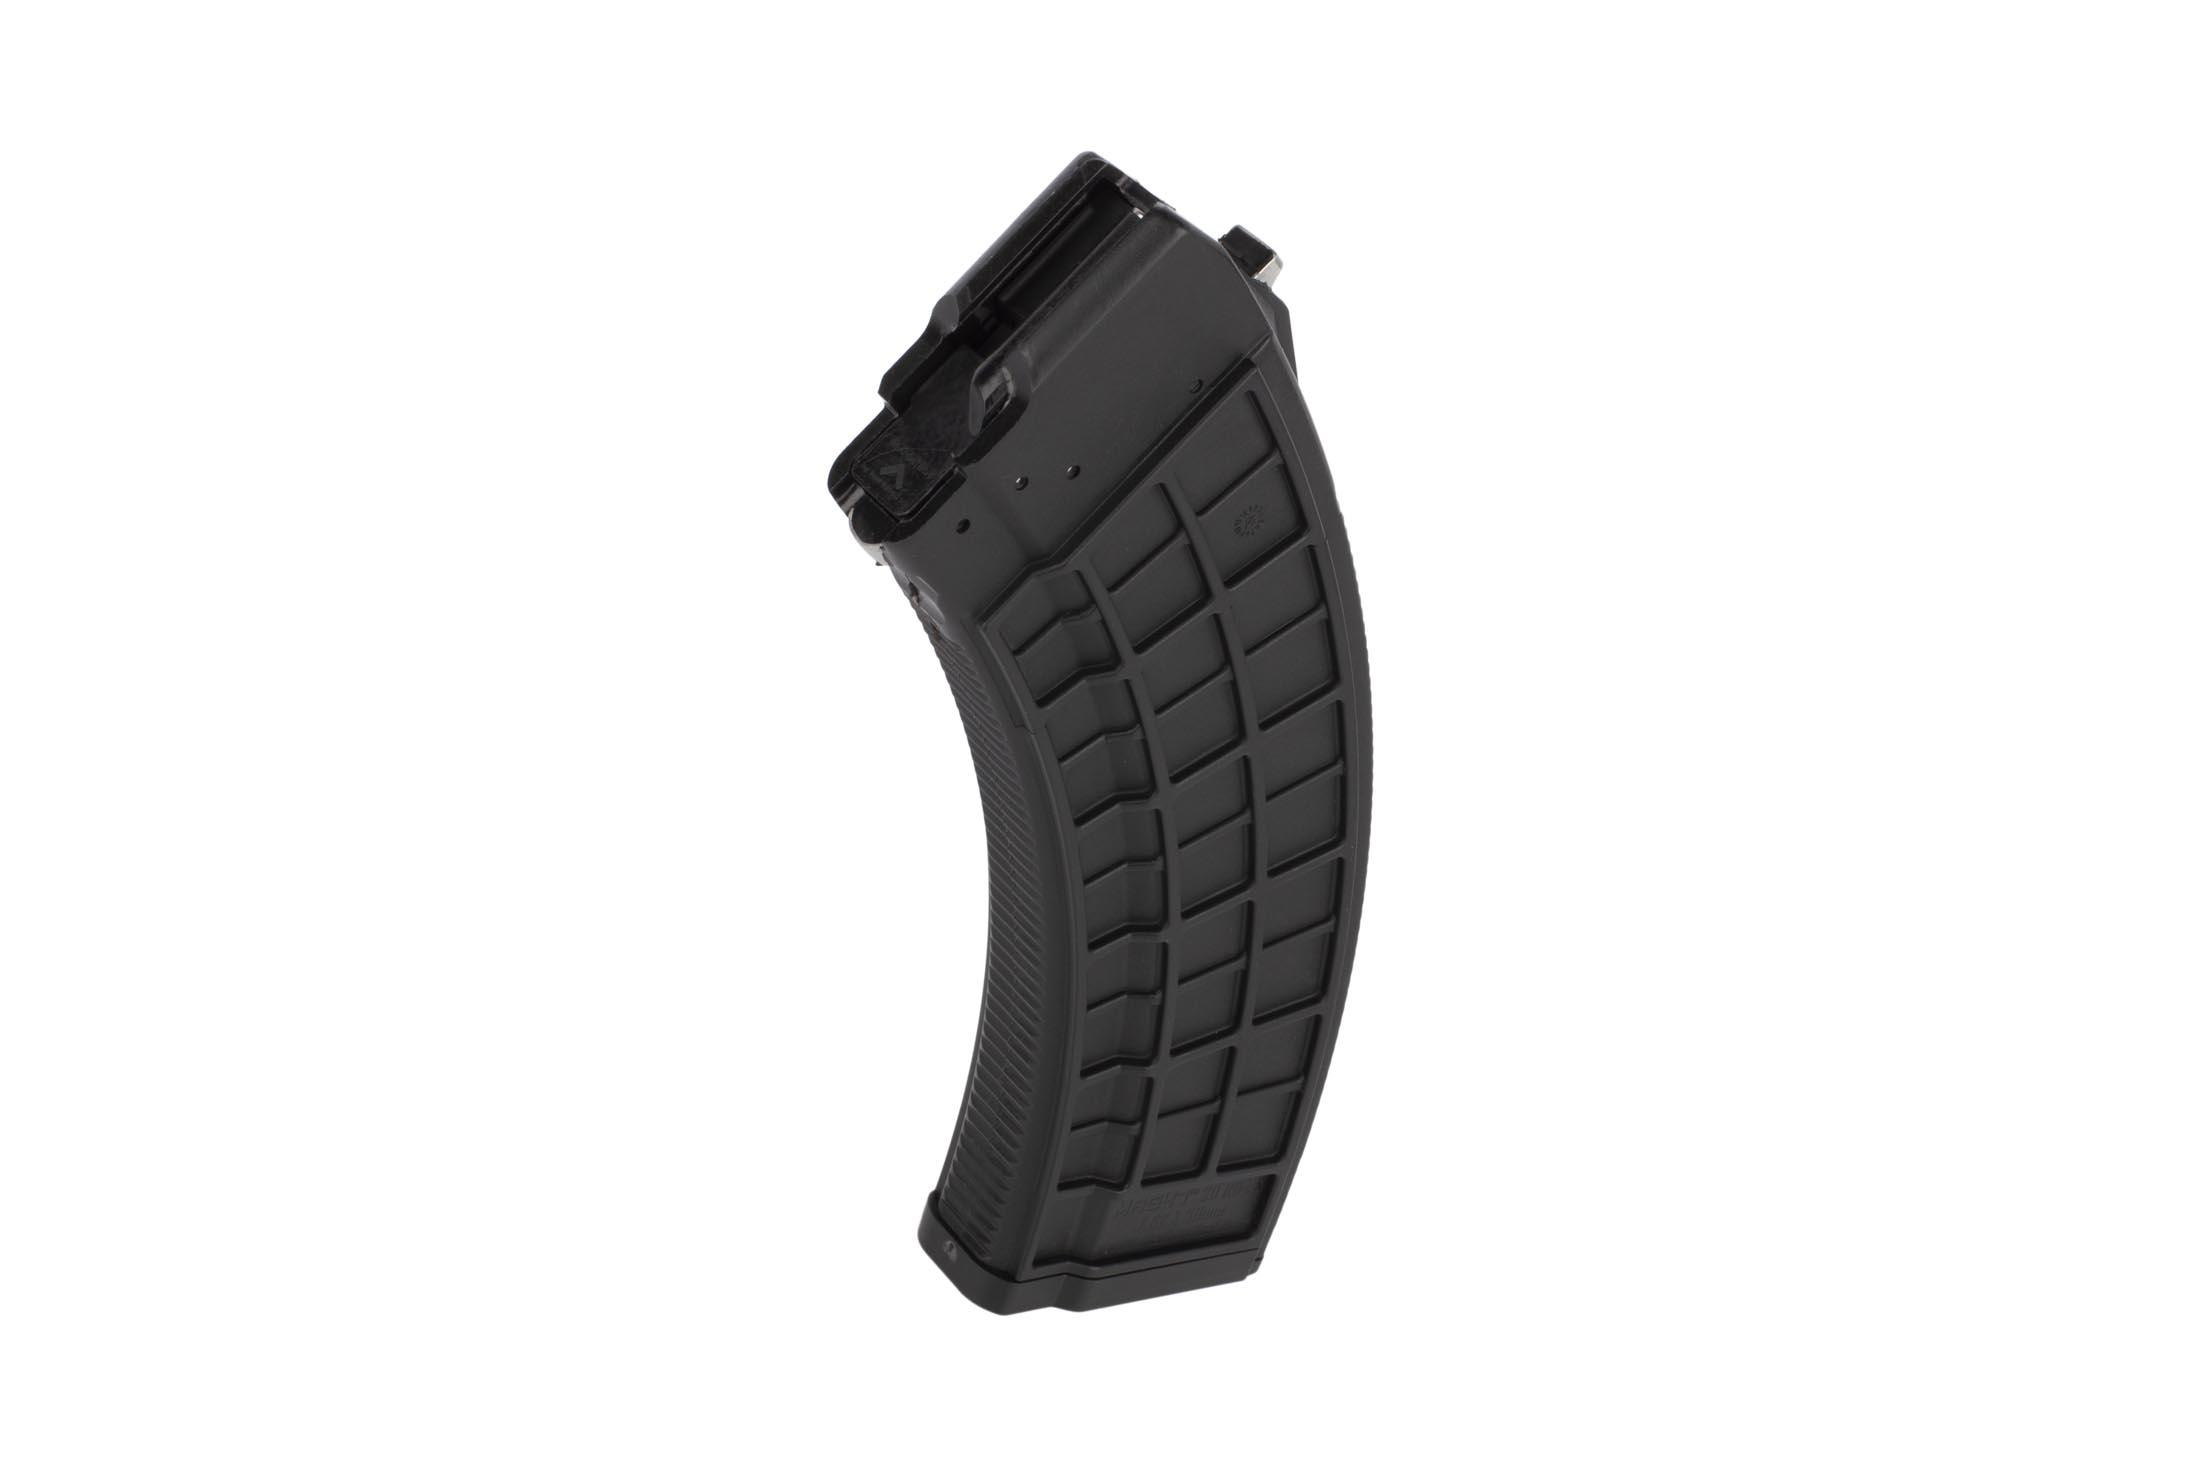 X Tech Tactical 30-Round Polymer AK-47 Bolt Hold Open Magazine - Black